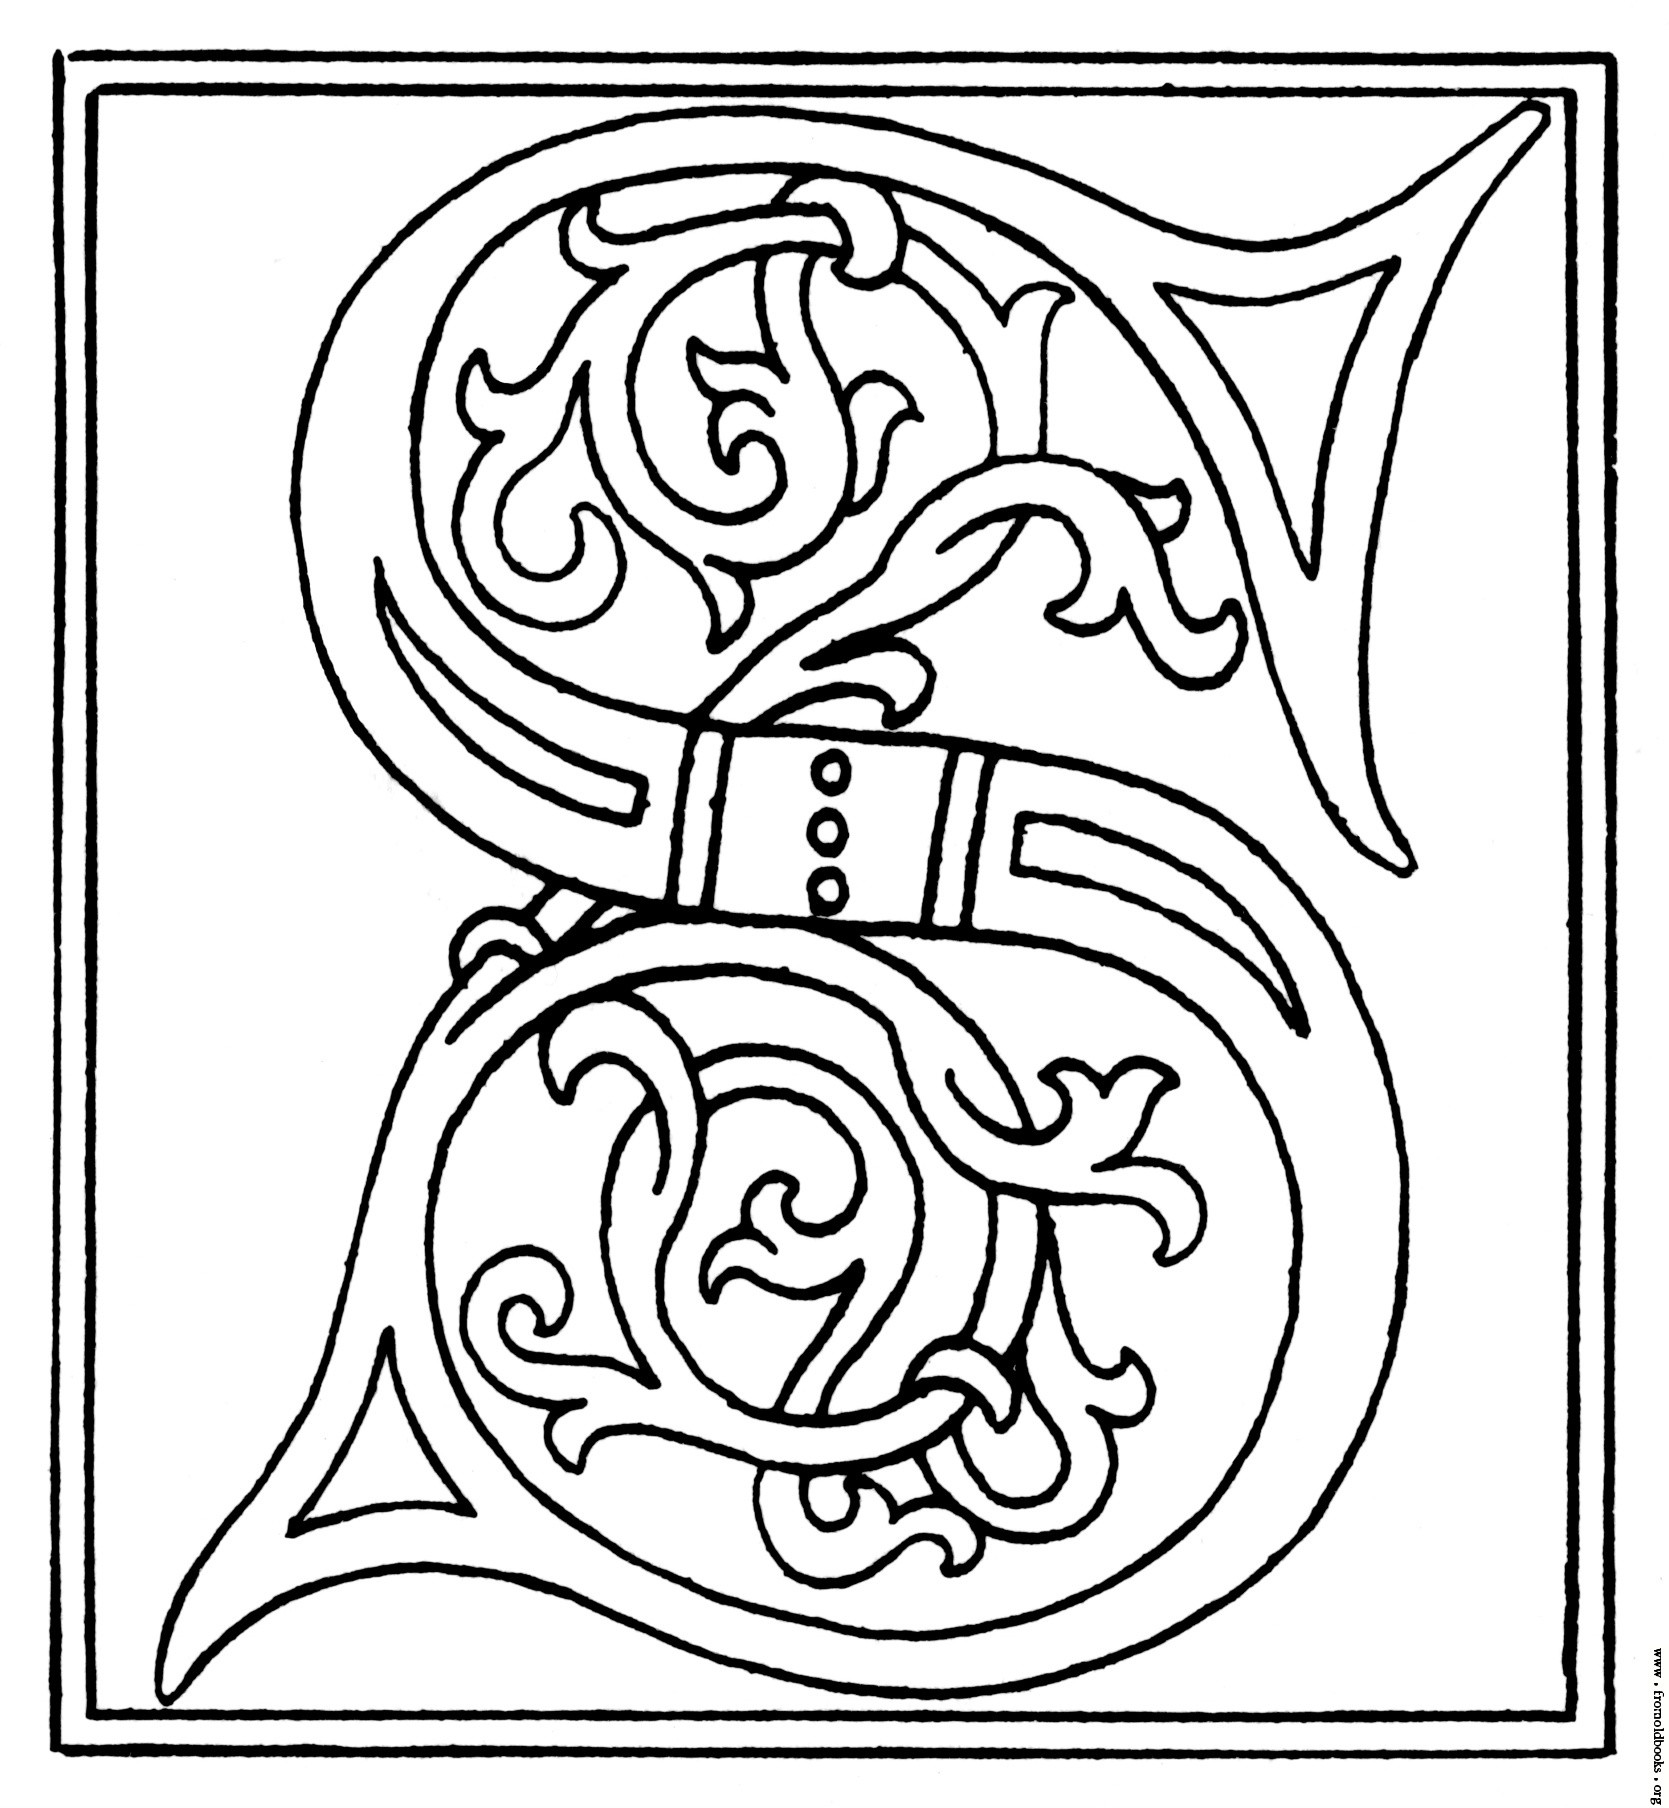 book of kells colouring pages free celtic ornament design from book of kells coloring page colouring free book pages of kells